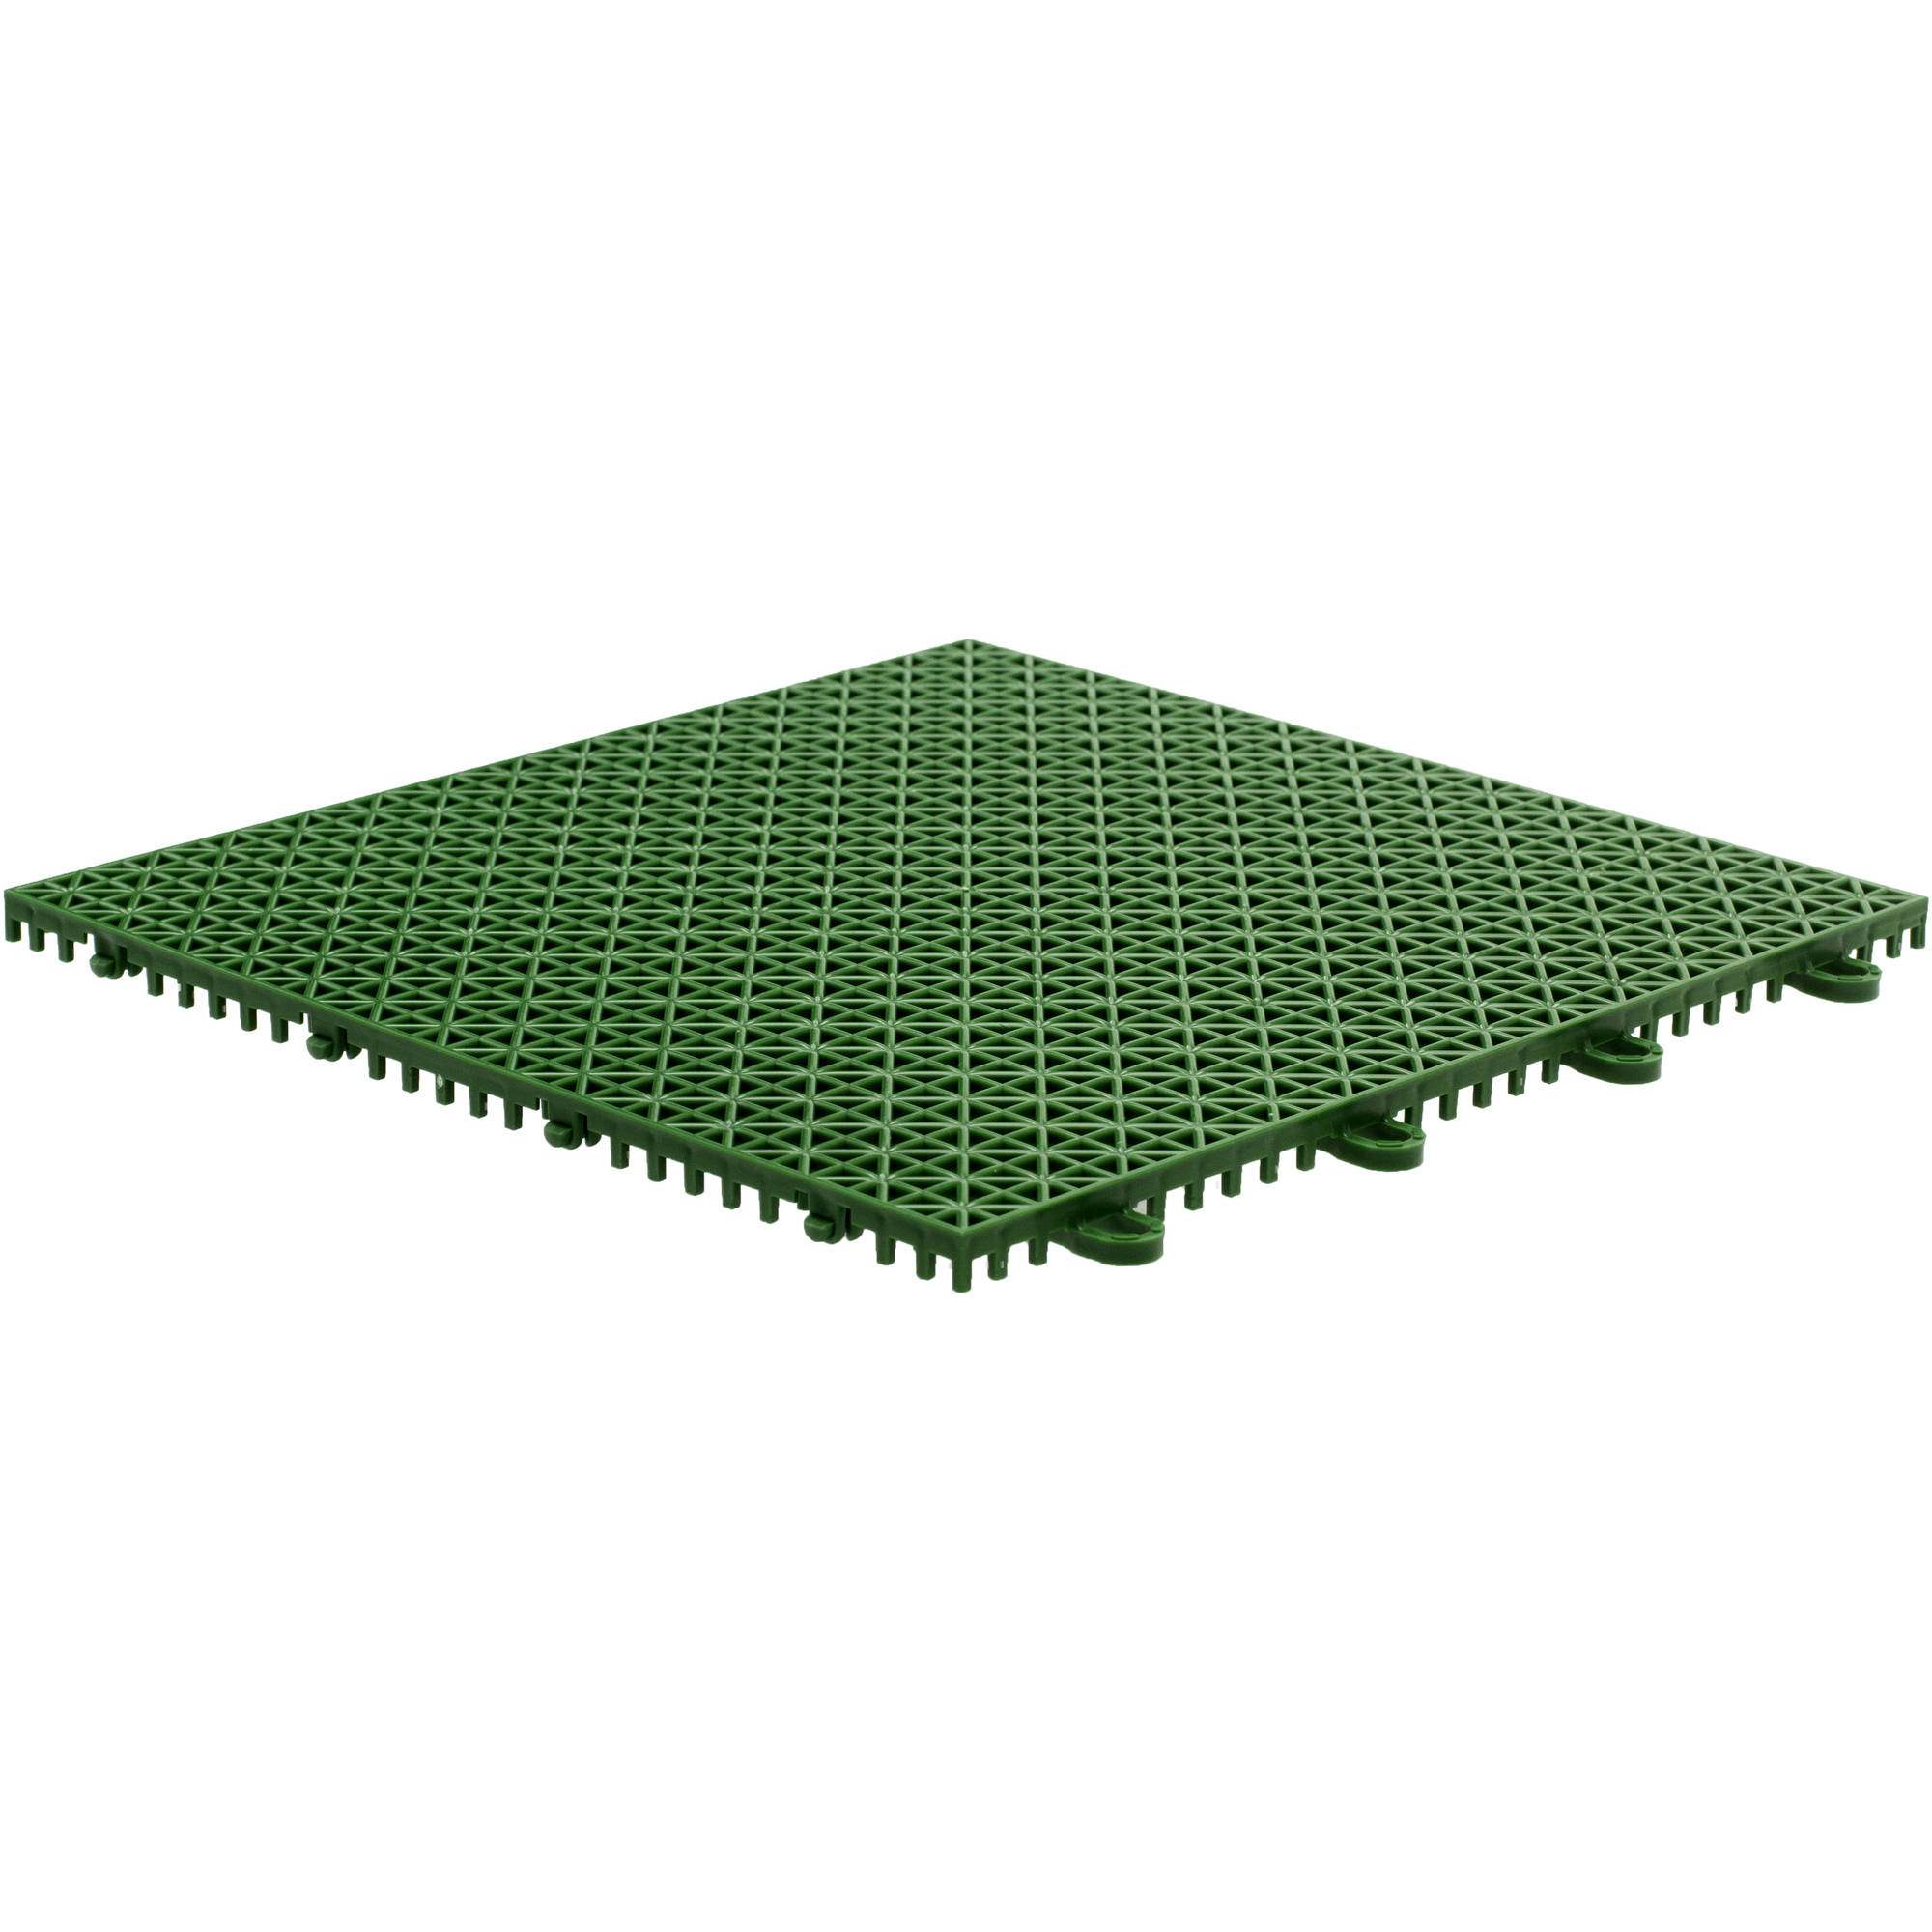 "Armadillo Tile, 12"" x 12"", Extreme Green, 9 per Pack"